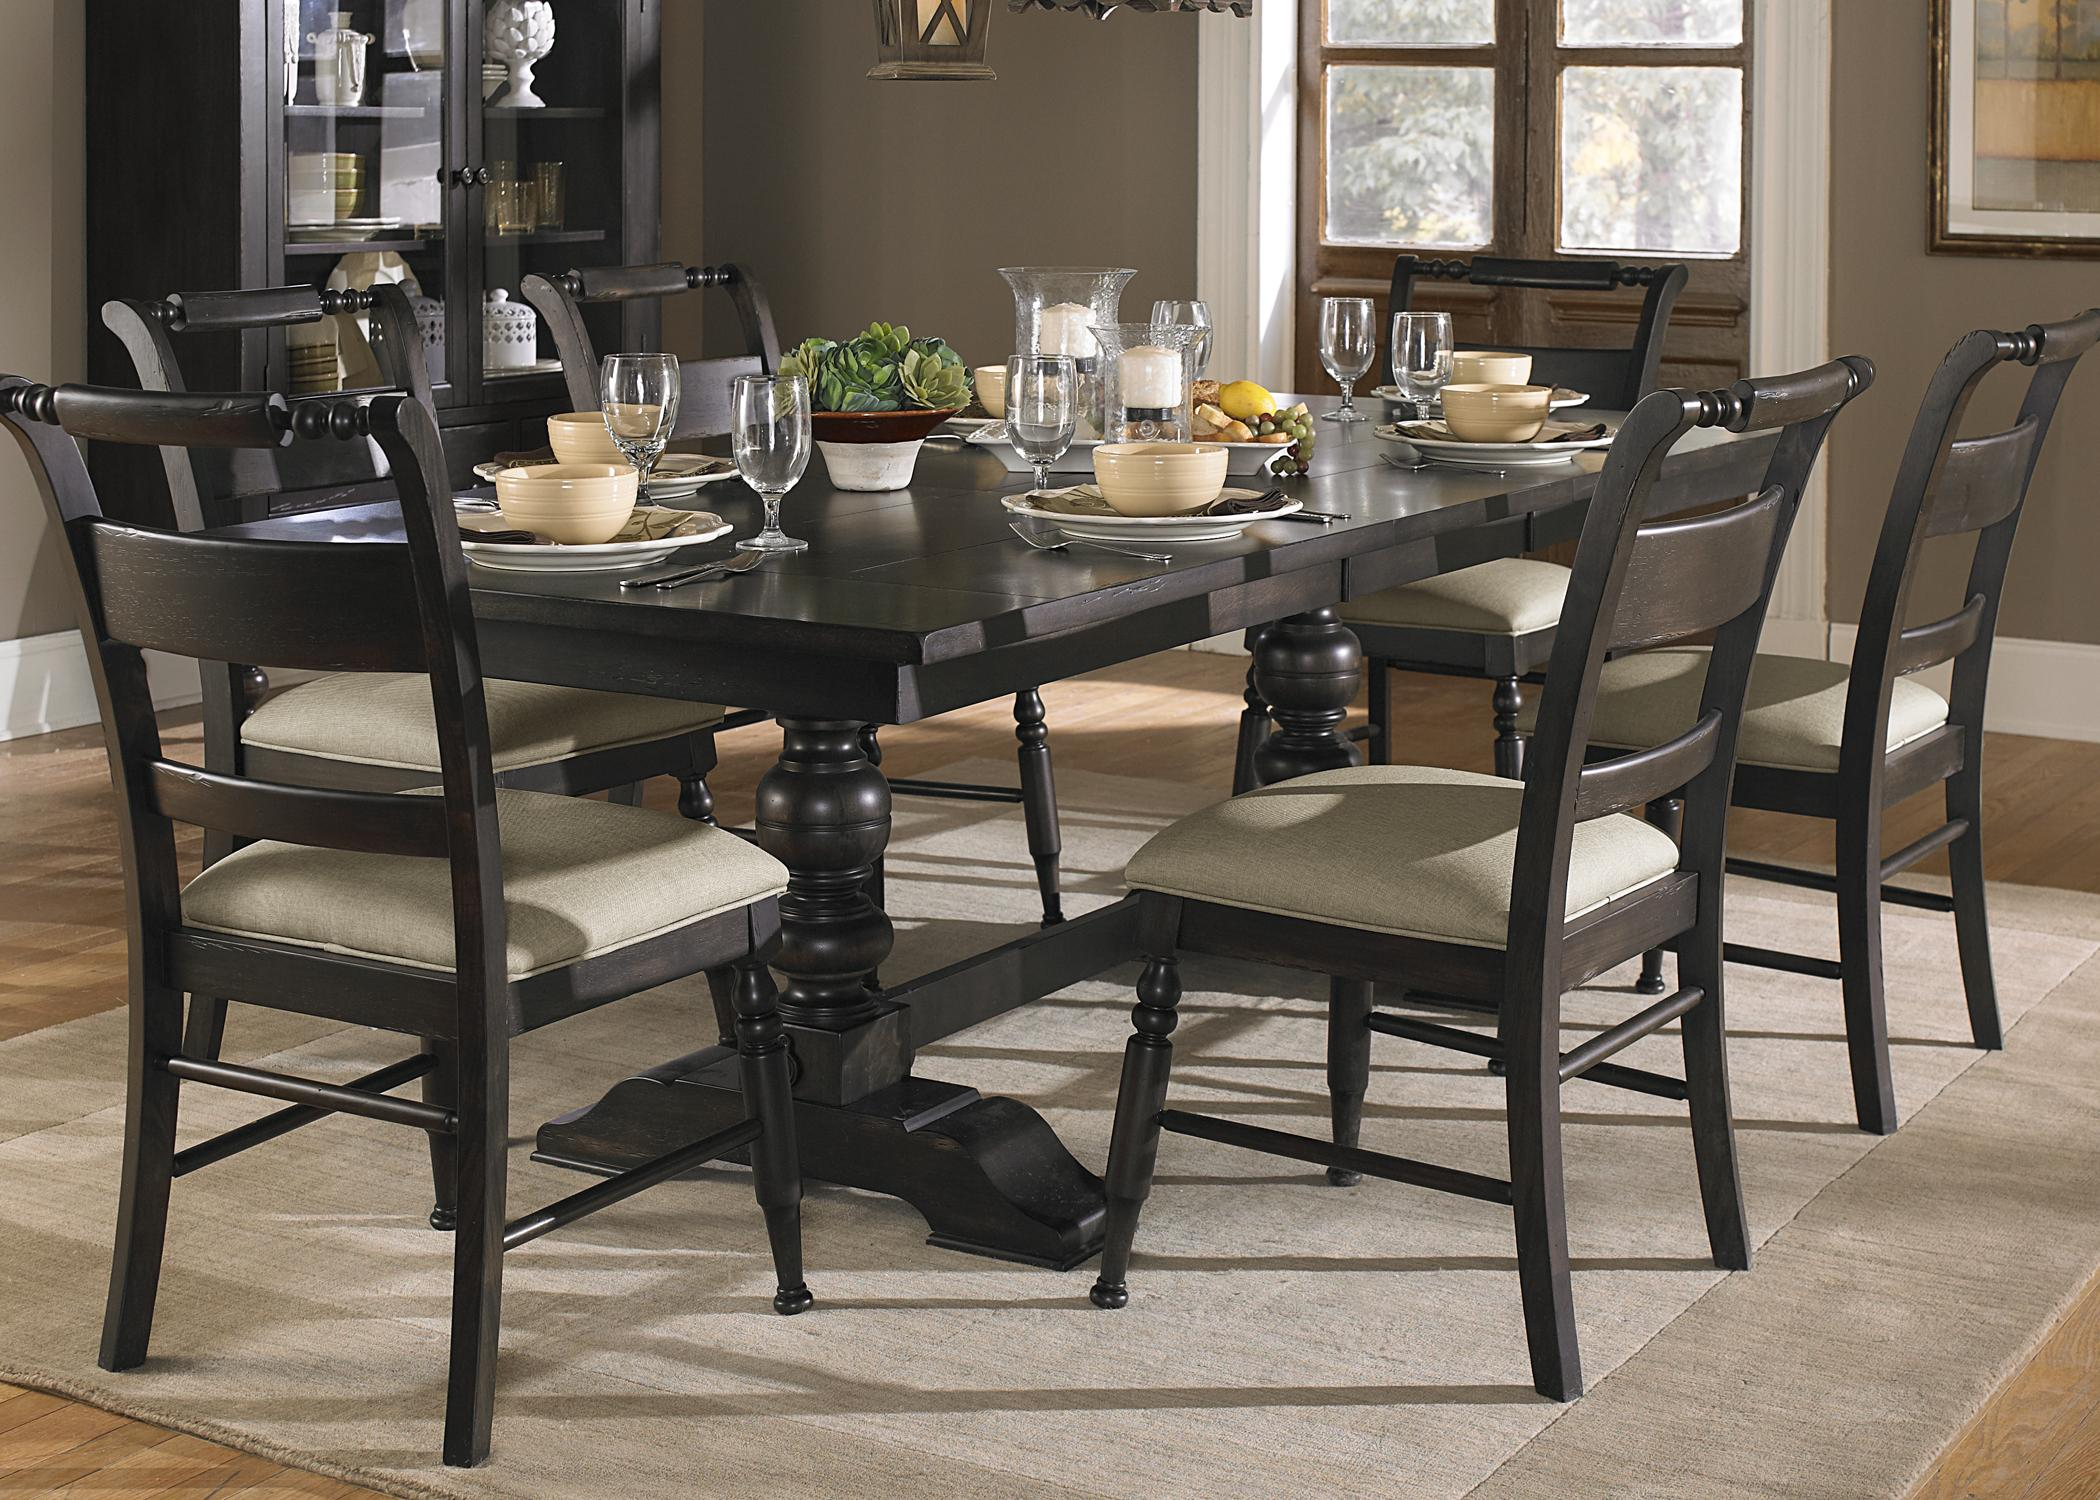 7 Piece Trestle Dining Room Table Set by Liberty Furniture | Wolf ...